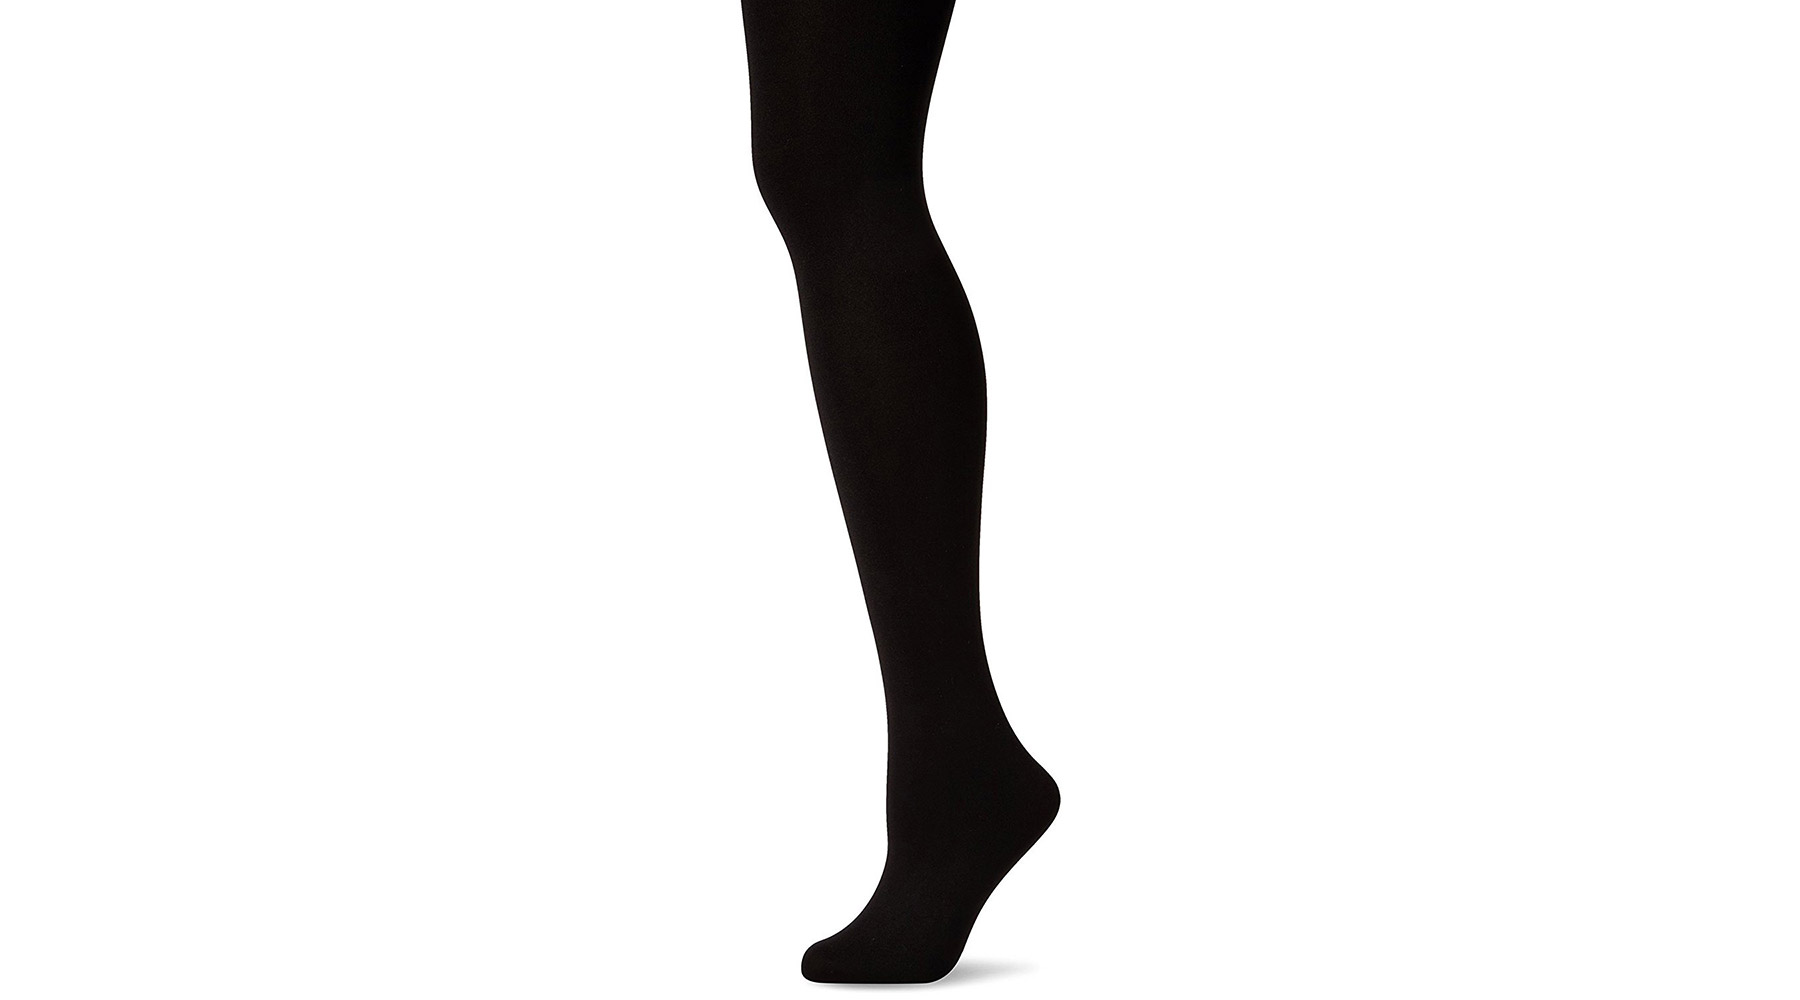 DKNY Opaque Coverage Tights